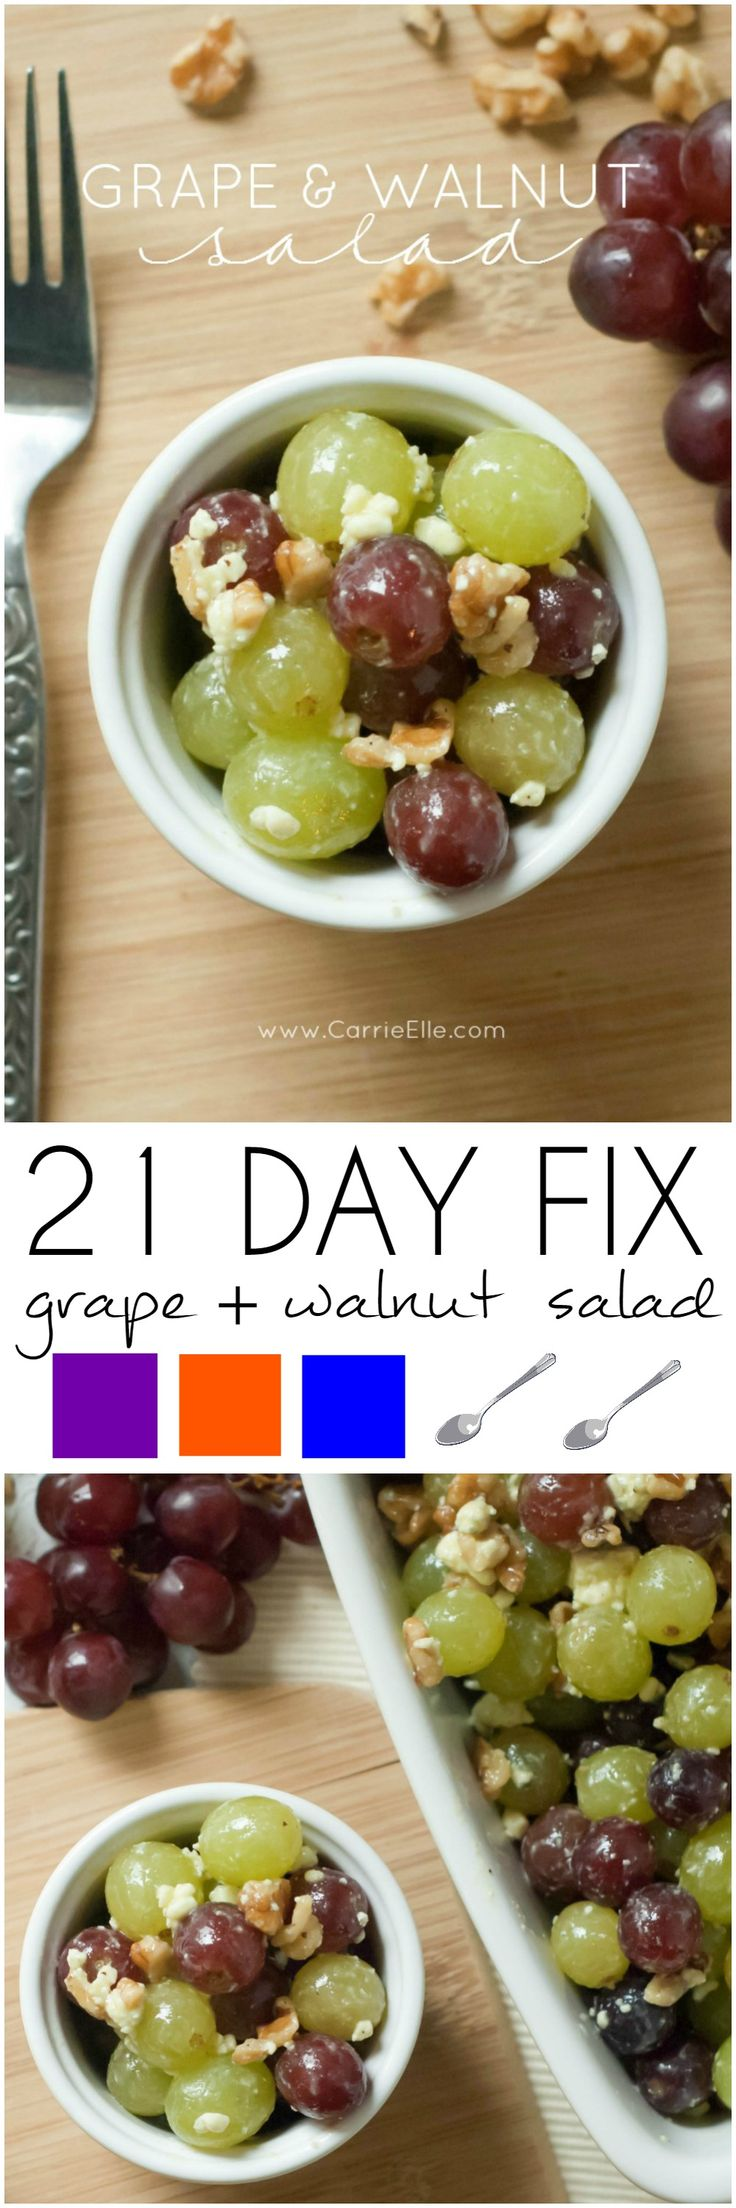 This Grape and Walnut salad is AMAZING...and 21 Day Fix friendly!